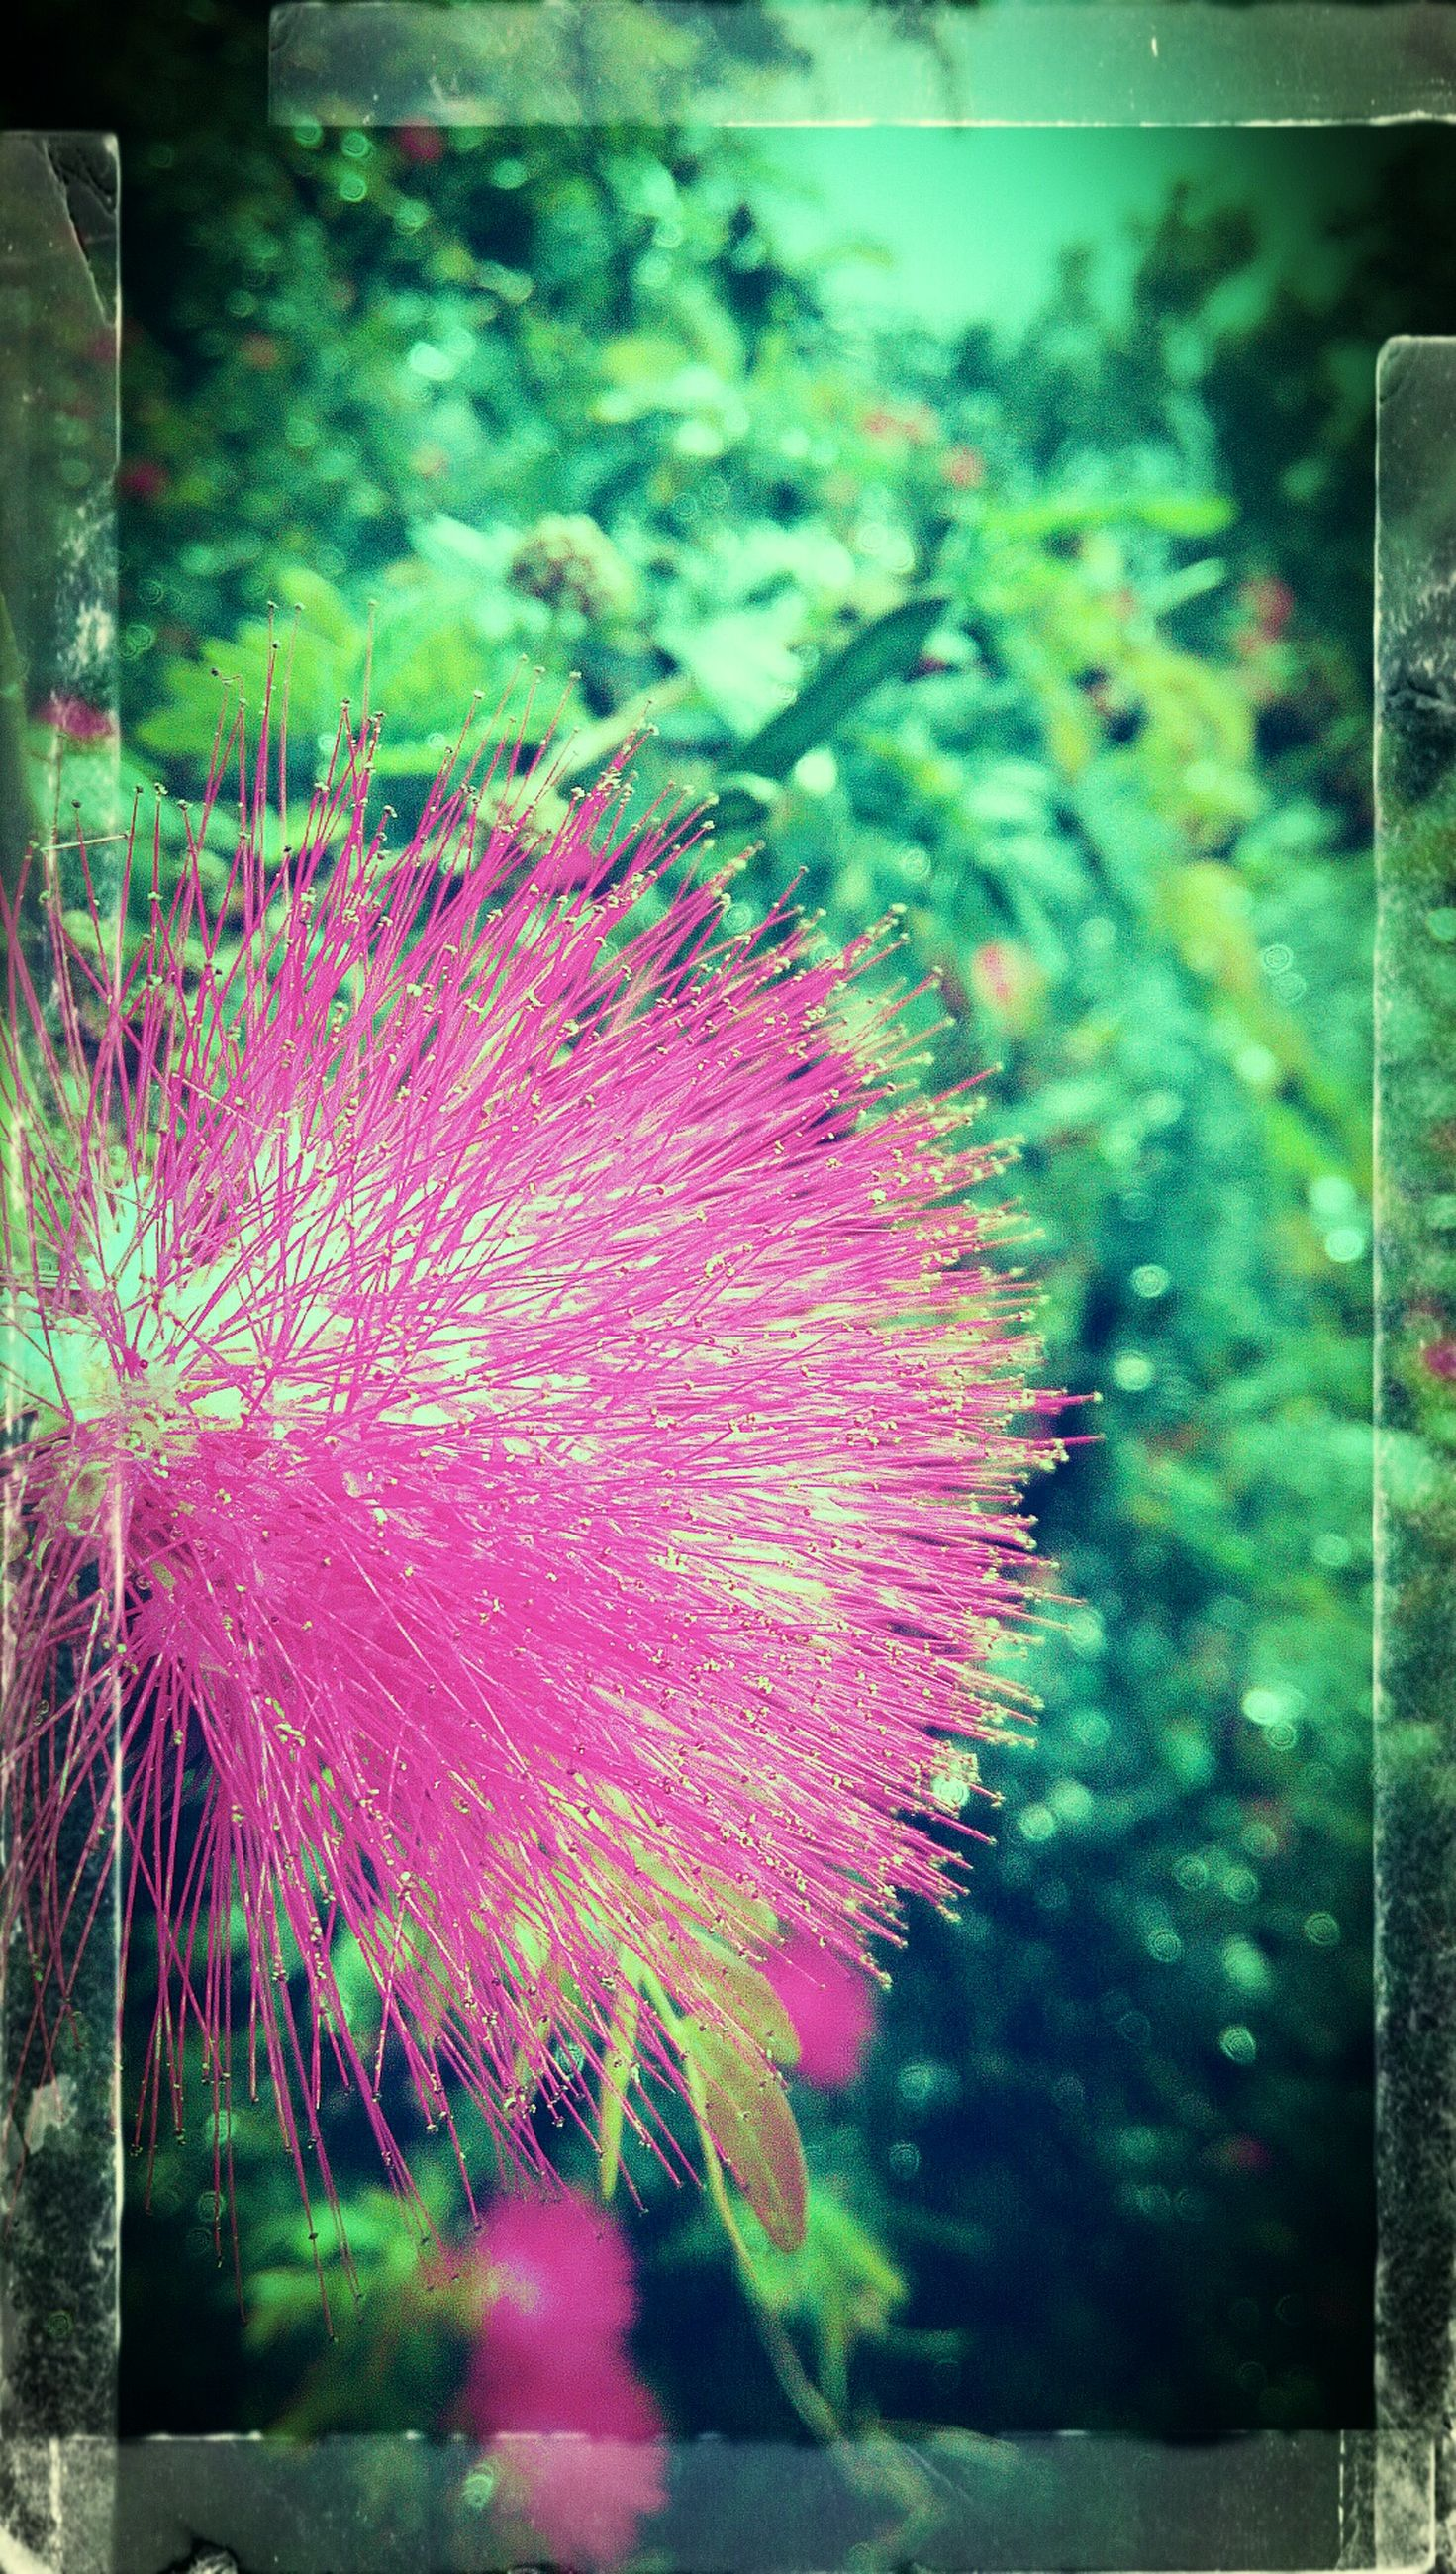 nature, plant, no people, flower, beauty in nature, growth, pink color, outdoors, green color, leaf, day, fragility, close-up, water, freshness, flower head